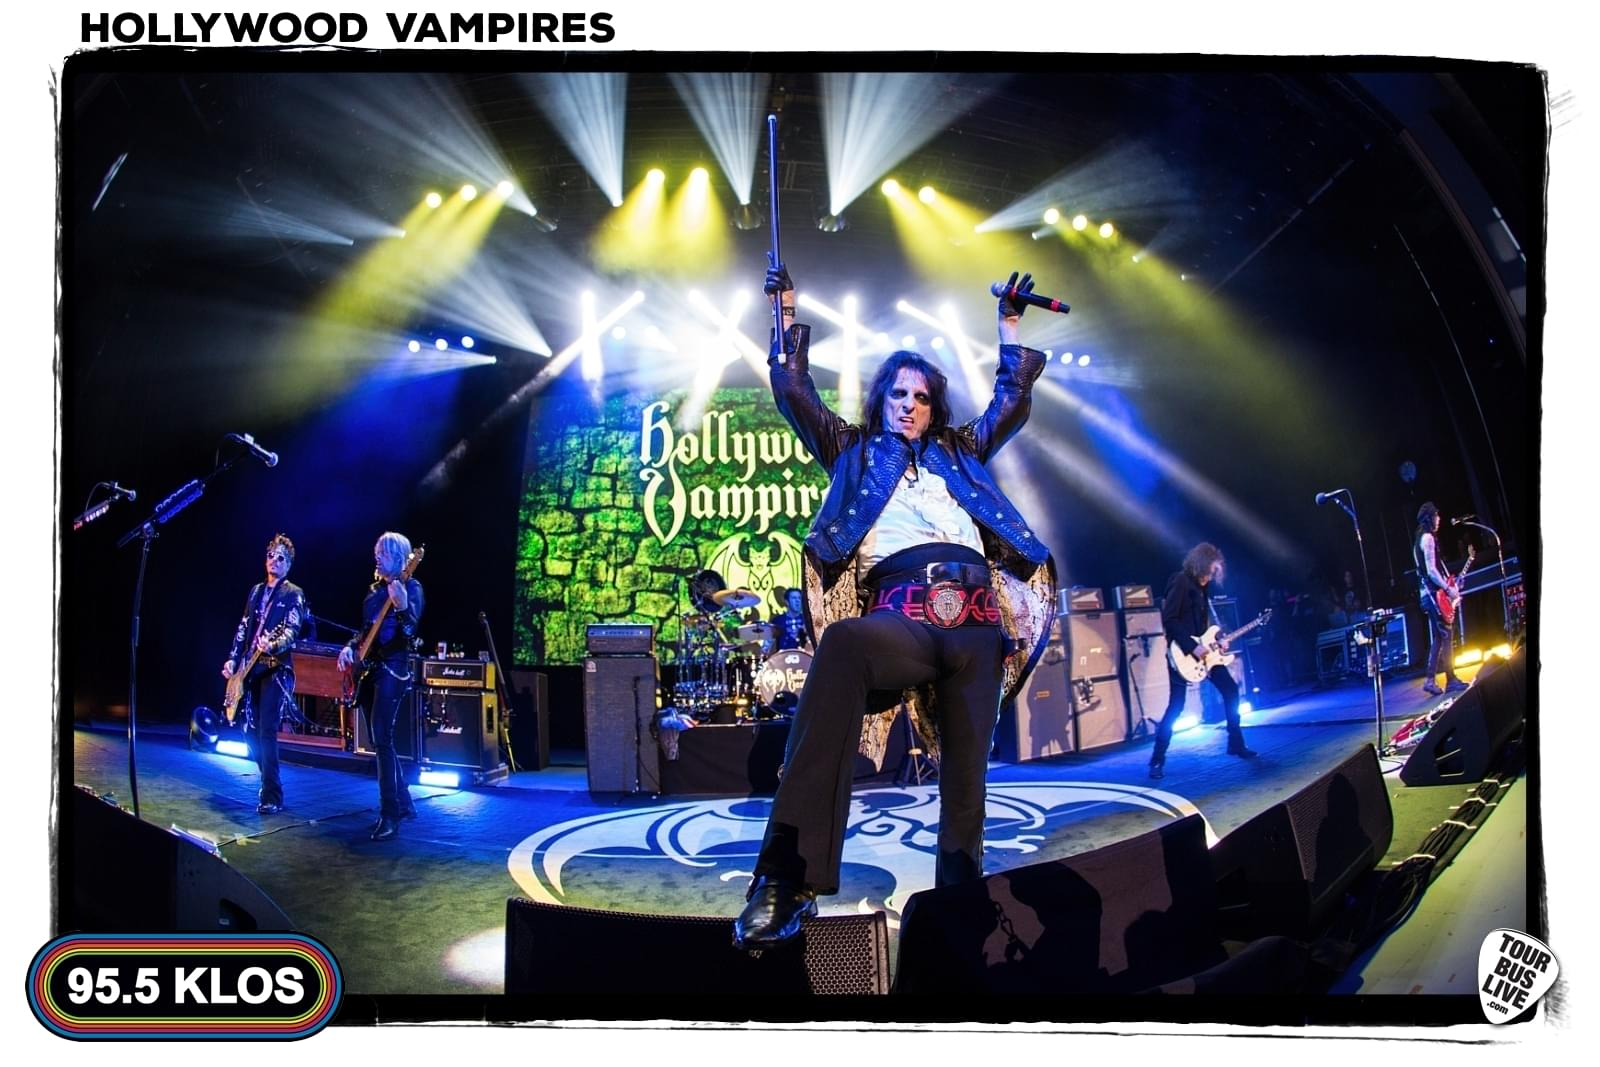 PICTURES: Hollywood Vampires at KLOS 50th Golden Anniversary Gala